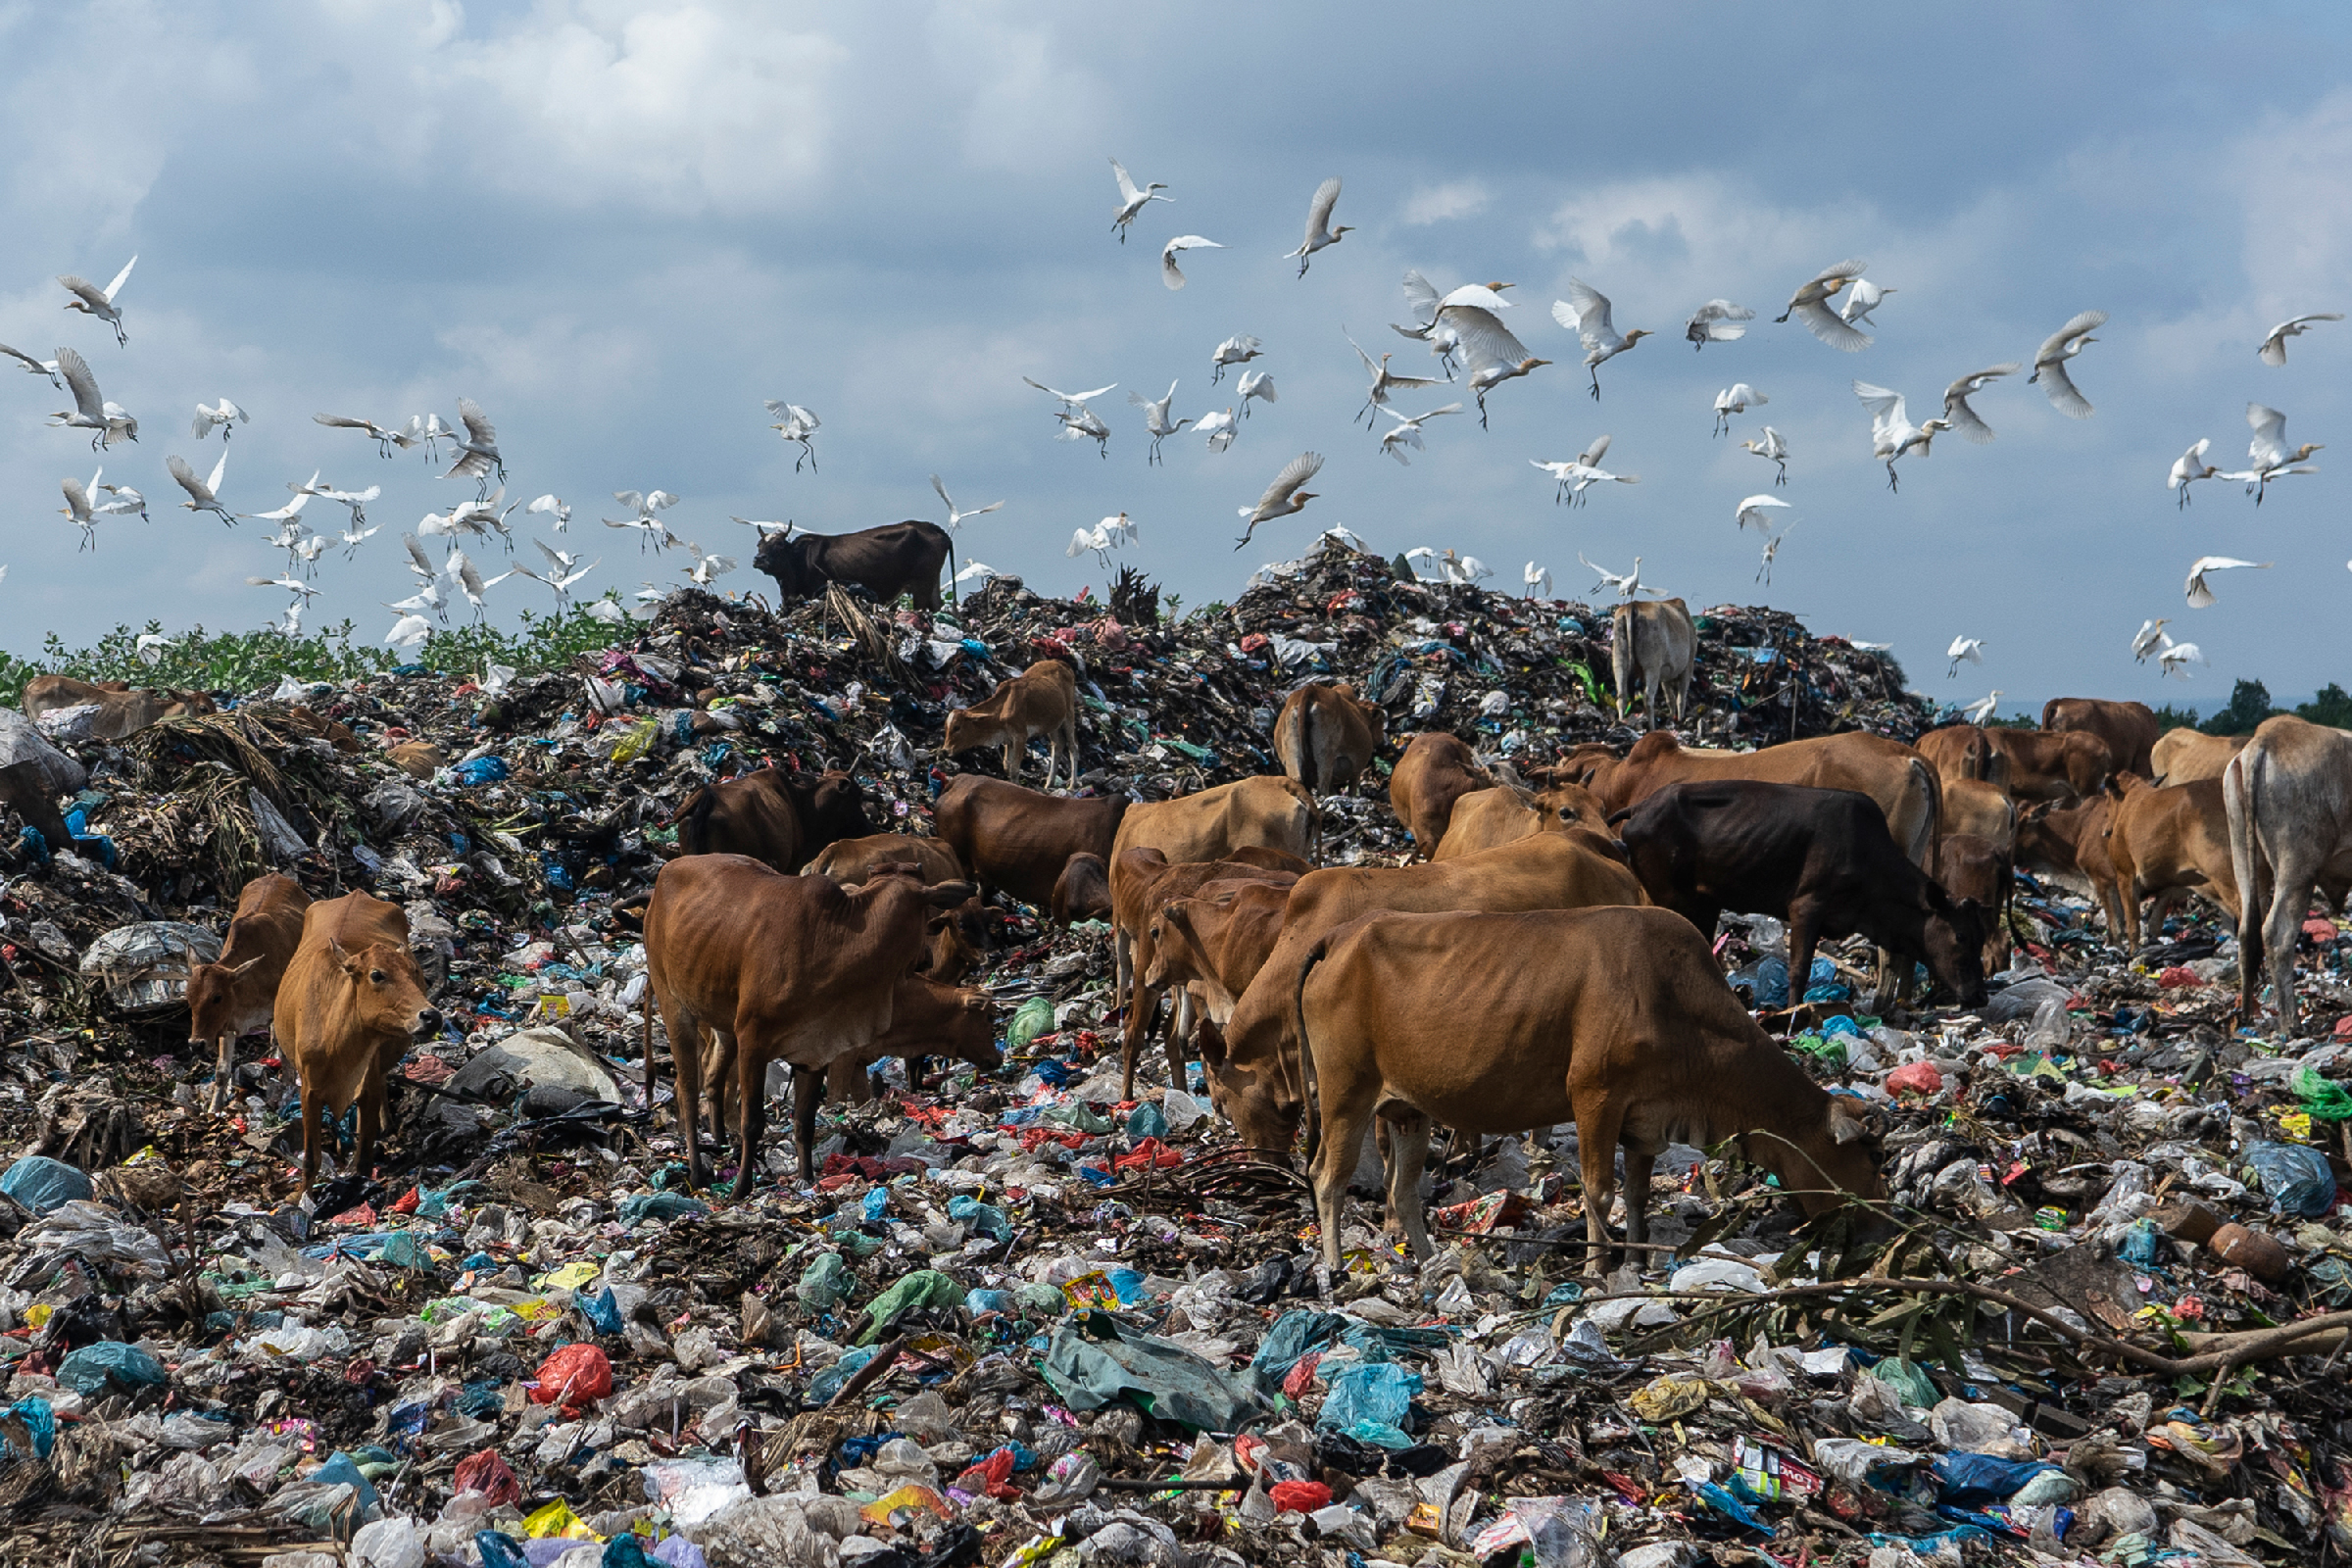 LHOKSEUMAWE, ACEH, INDONESIA - 2020/01/14: Cows and egrets look for food at a landfill in Lhokseumawe, Aceh province.The World Bank report shows that around 105 thousand metric tons of municipal waste are produced in Indonesia every day. This figure is expected to increase by 150 thousand tons by 2025. Poorly managed municipal waste will enter waterways and eventually become a problem for the Indonesian oceans. Analysis conducted by the World Bank in 2018 in 15 cities in central and western Indonesia shows that the composition of municipal waste varies, 44% organic waste, 21% diapers, and 16% plastic bags. (Photo by Zikri Maulana/SOPA Images/LightRocket via Getty Images)